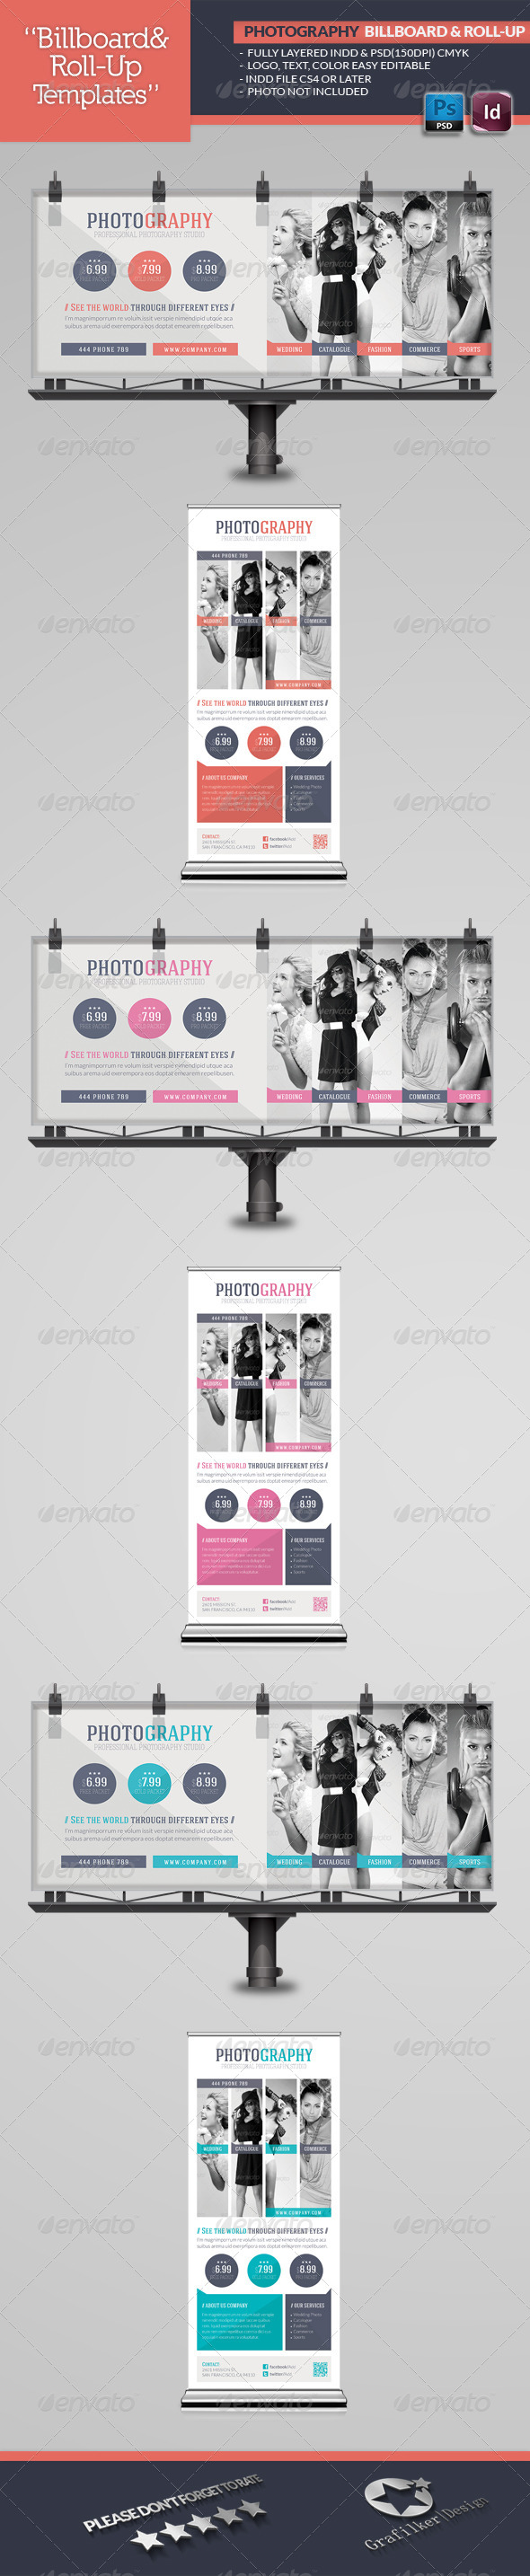 GraphicRiver Photography Billboard & Roll-Up Template 5466214